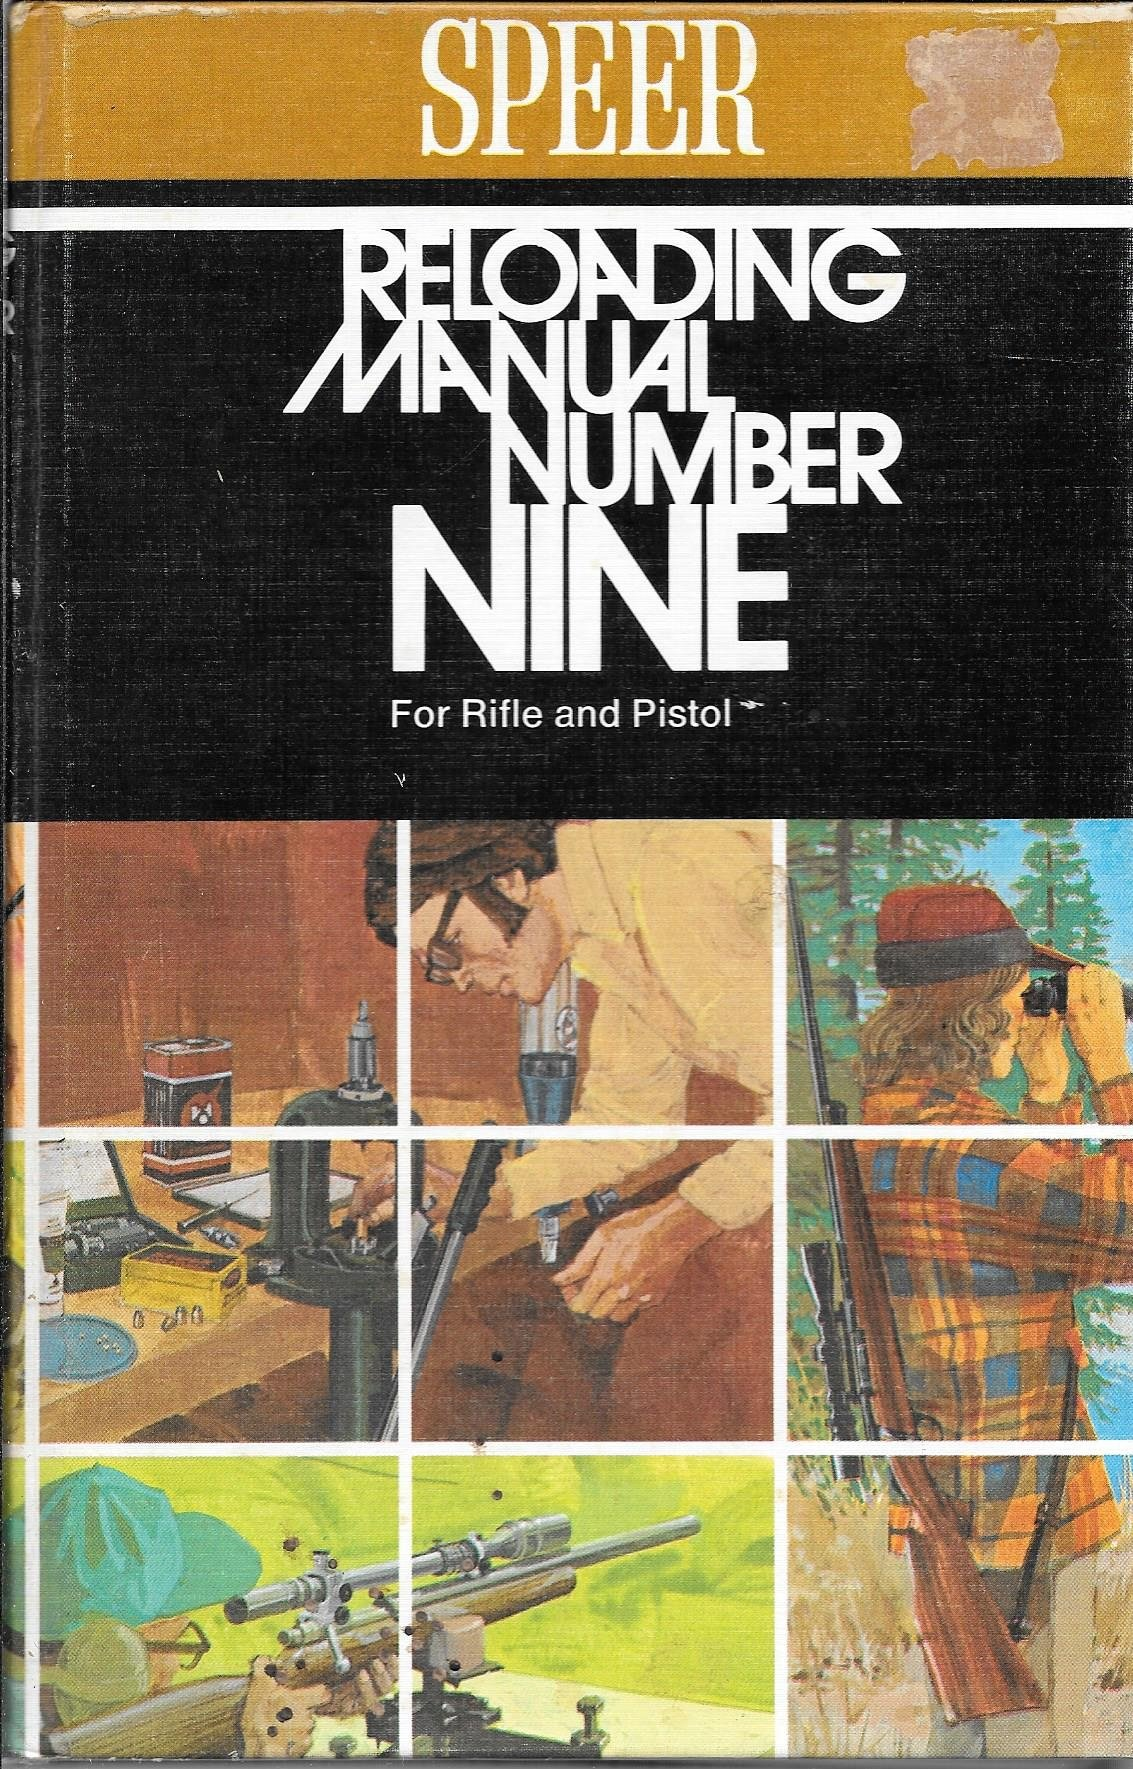 Reloading Manual Number Nine for Rifle and Pistol: Research